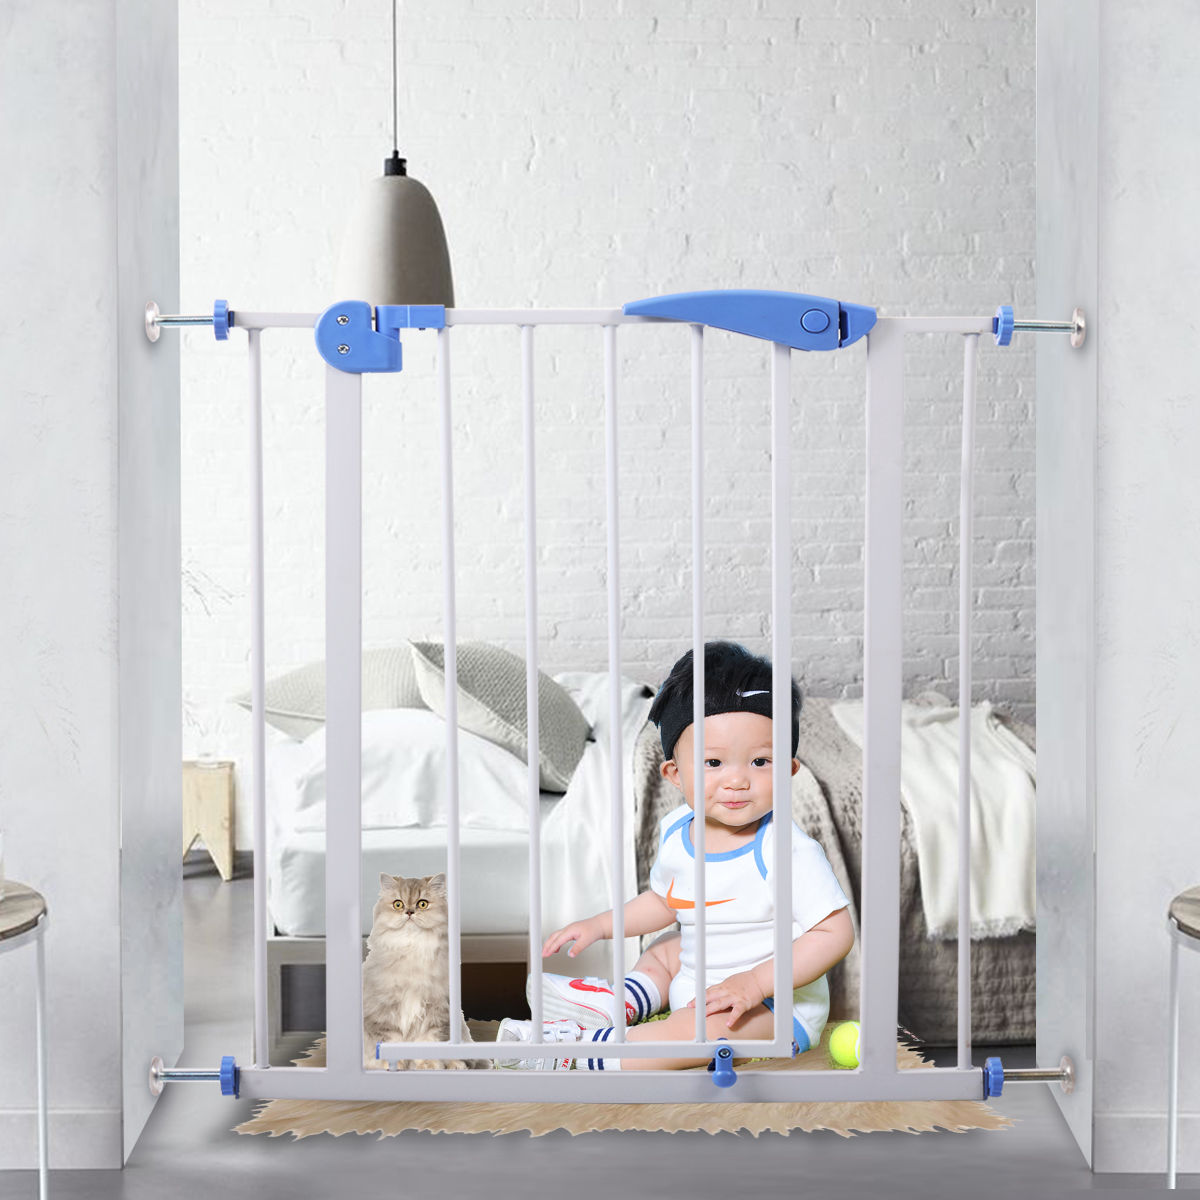 Lazymoon Baby Safety Gate Door Walk Through Child Toddler Pet Metal Easy Locking System